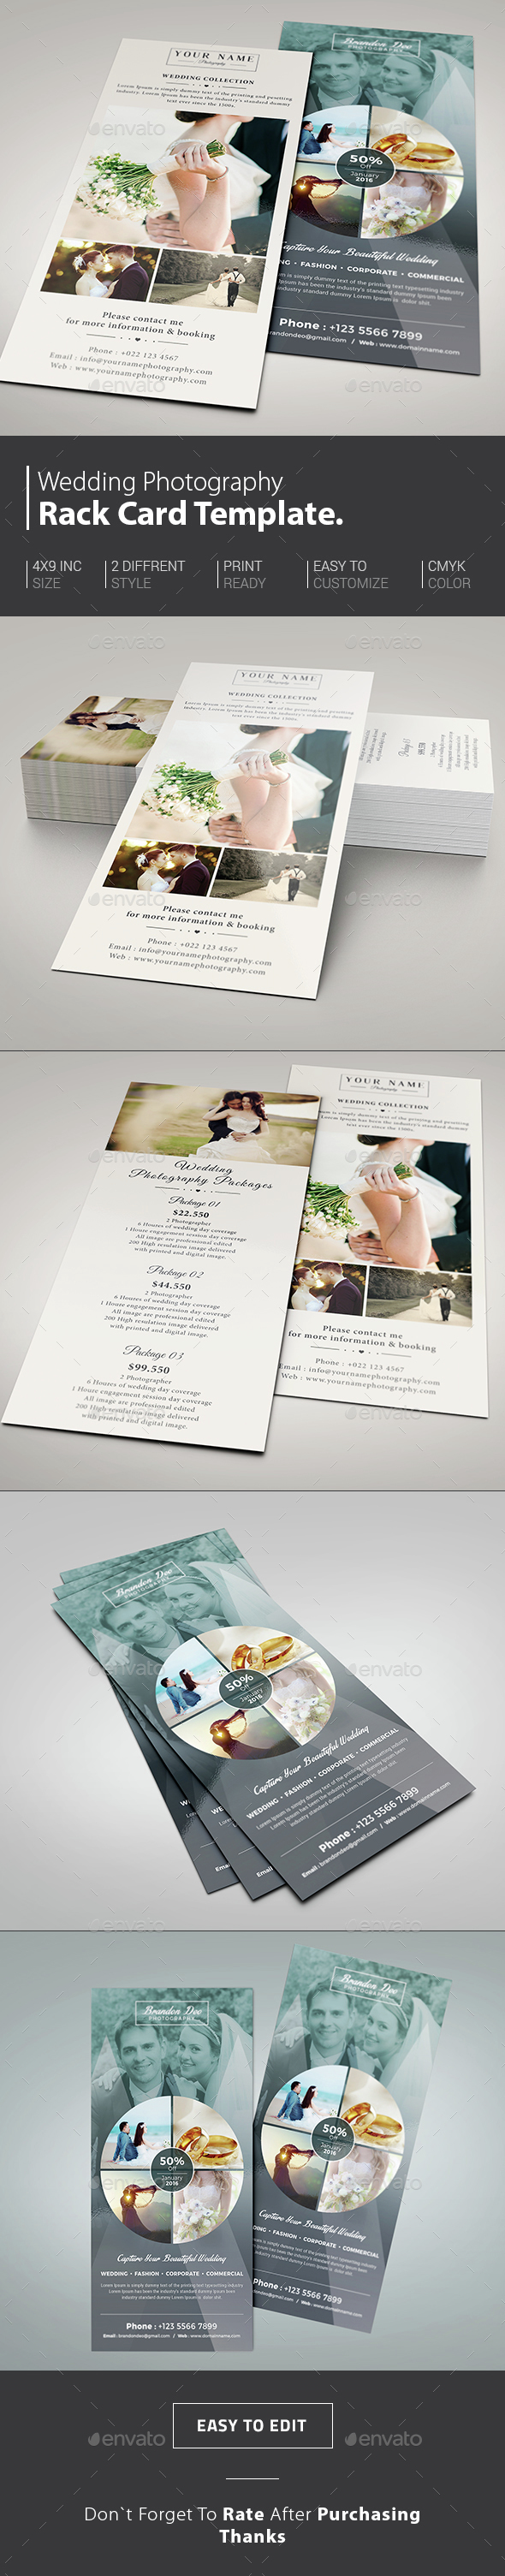 Photography Logo Stationery And Design Templates